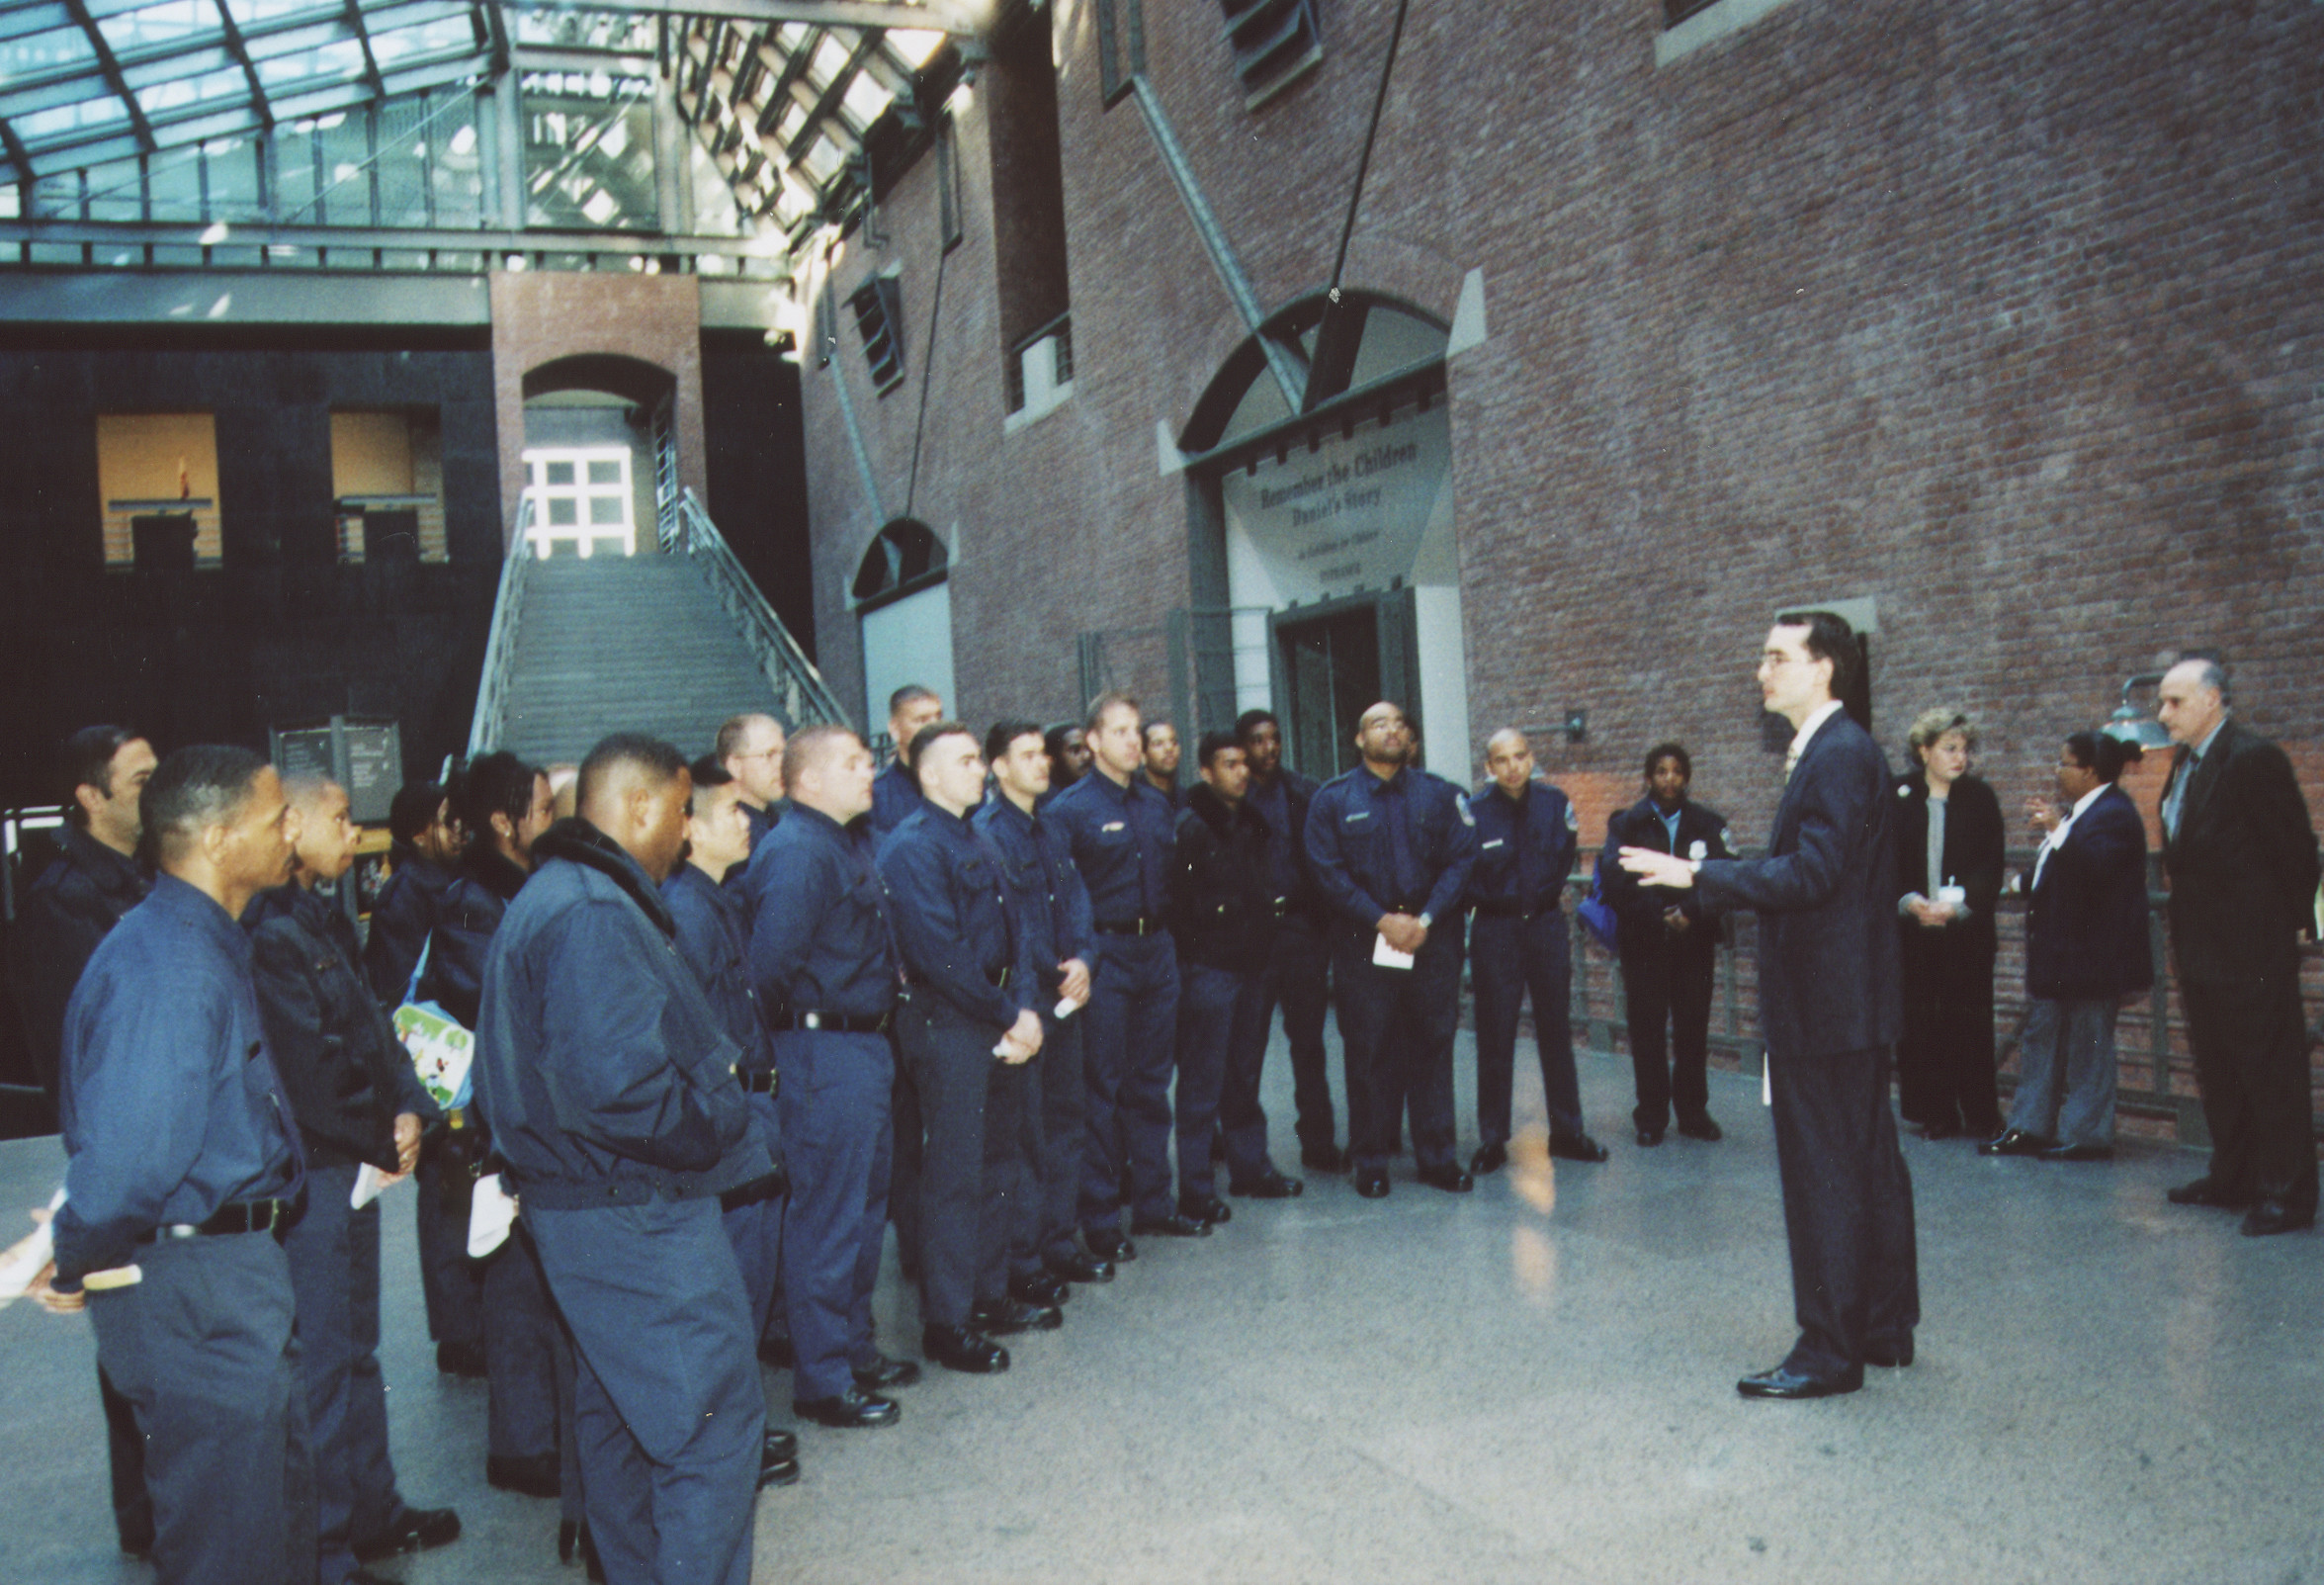 DC police training squad visits the U.S. Holocaust Memorial Museum.   Andres Abril begins the tour by speaking to the officers in the Hall of Witness.